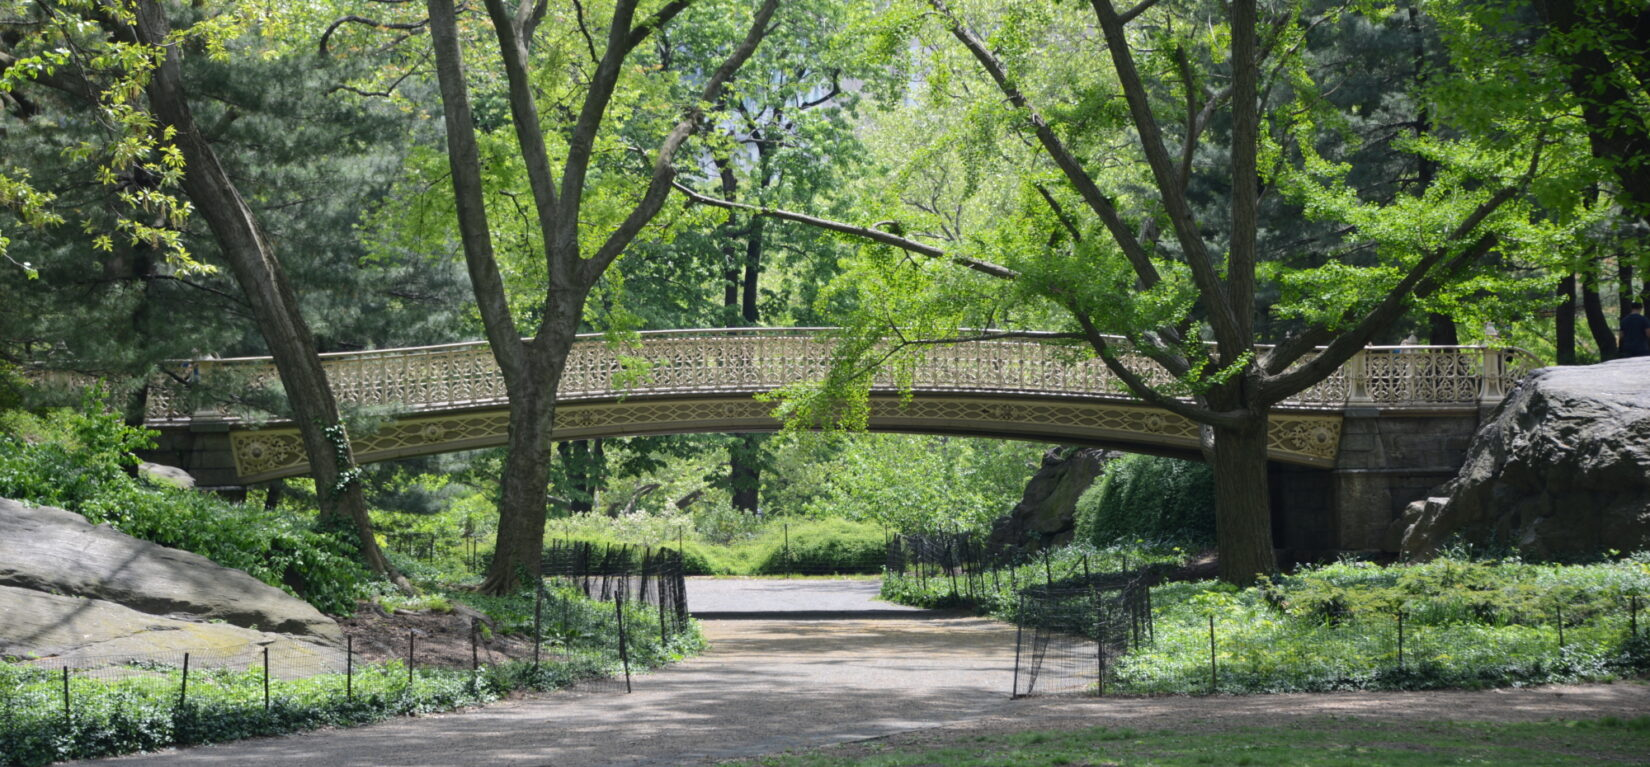 The Pinebank Arch spans a walking path, shot in spring